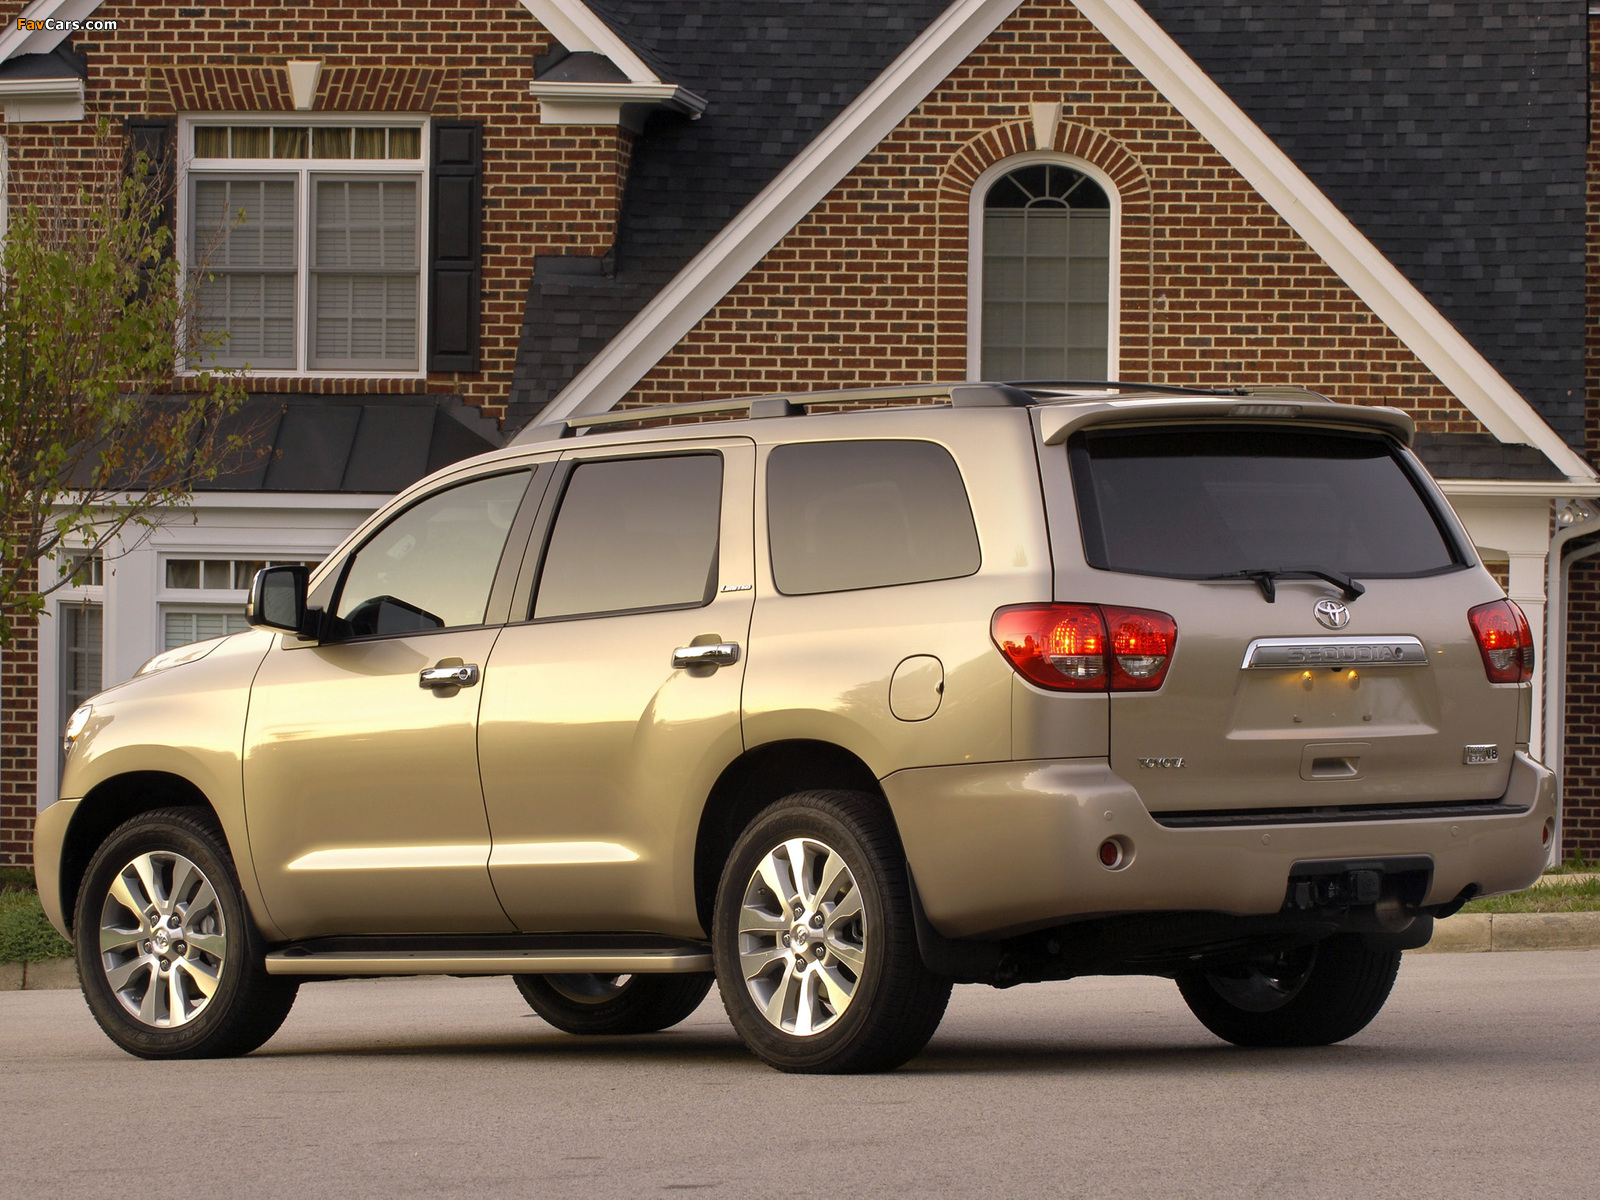 Toyota Sequoia Limited 2007 pictures (1600 x 1200)